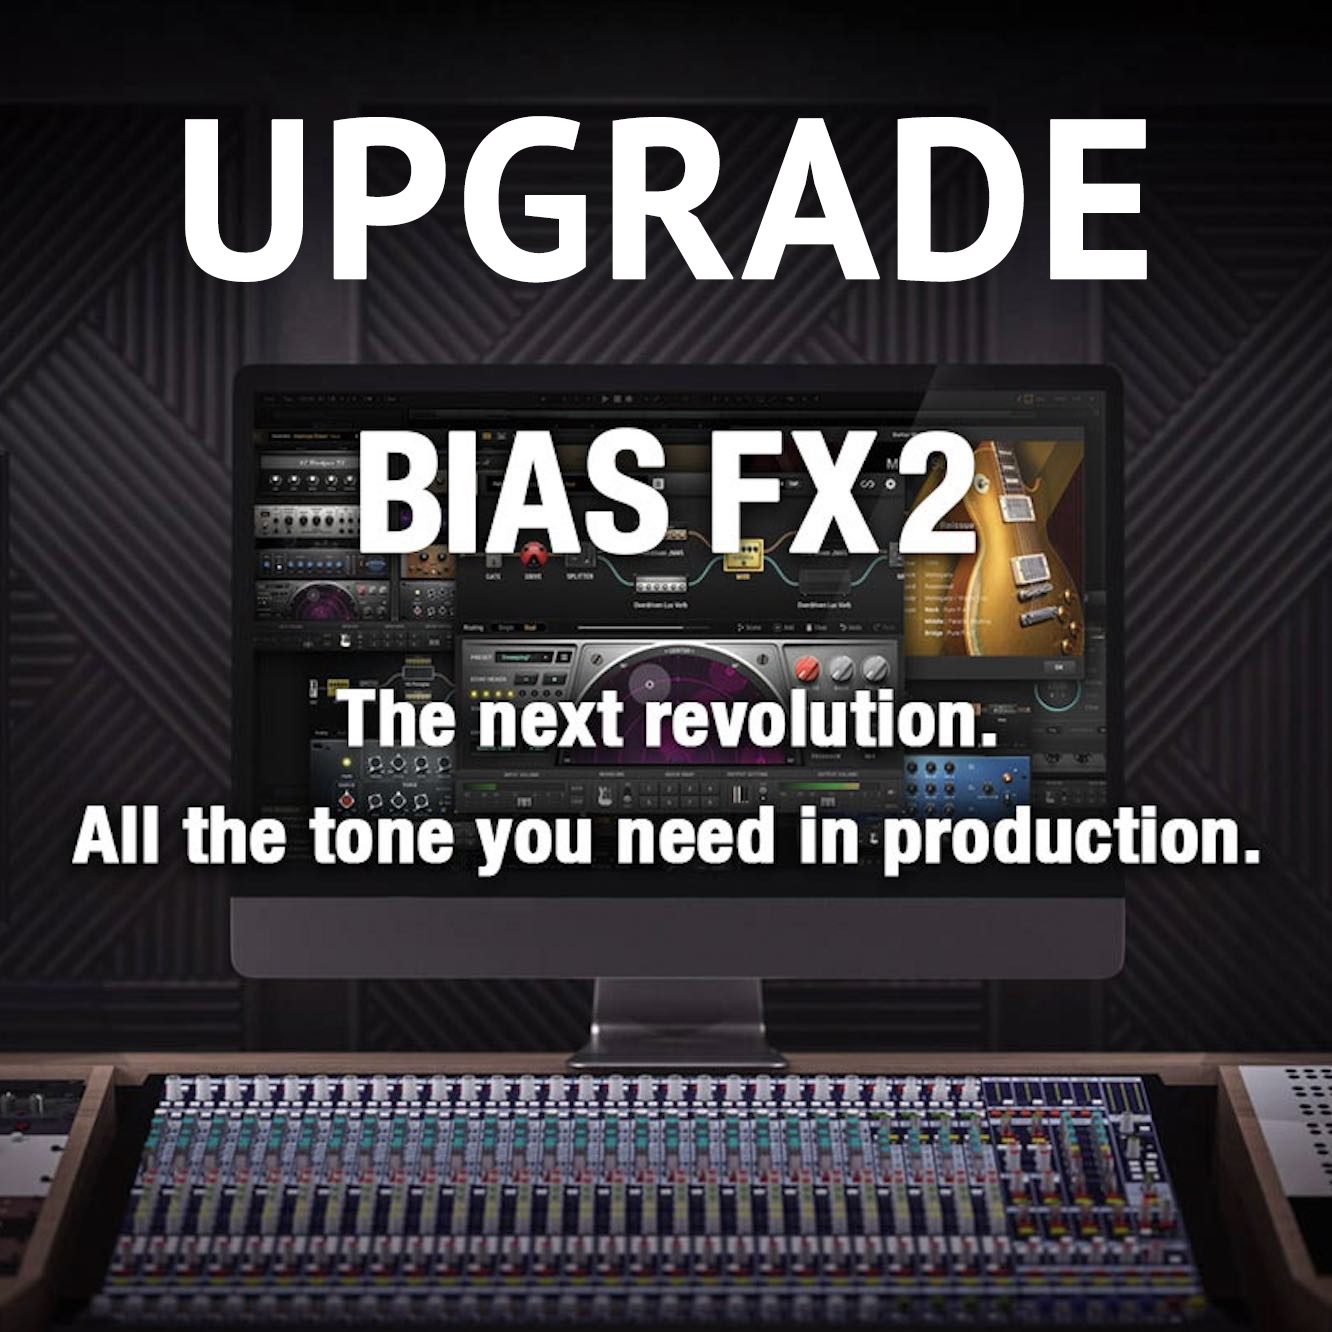 Upgrade From BIAS FX Standard to BIAS FX 2 Elite